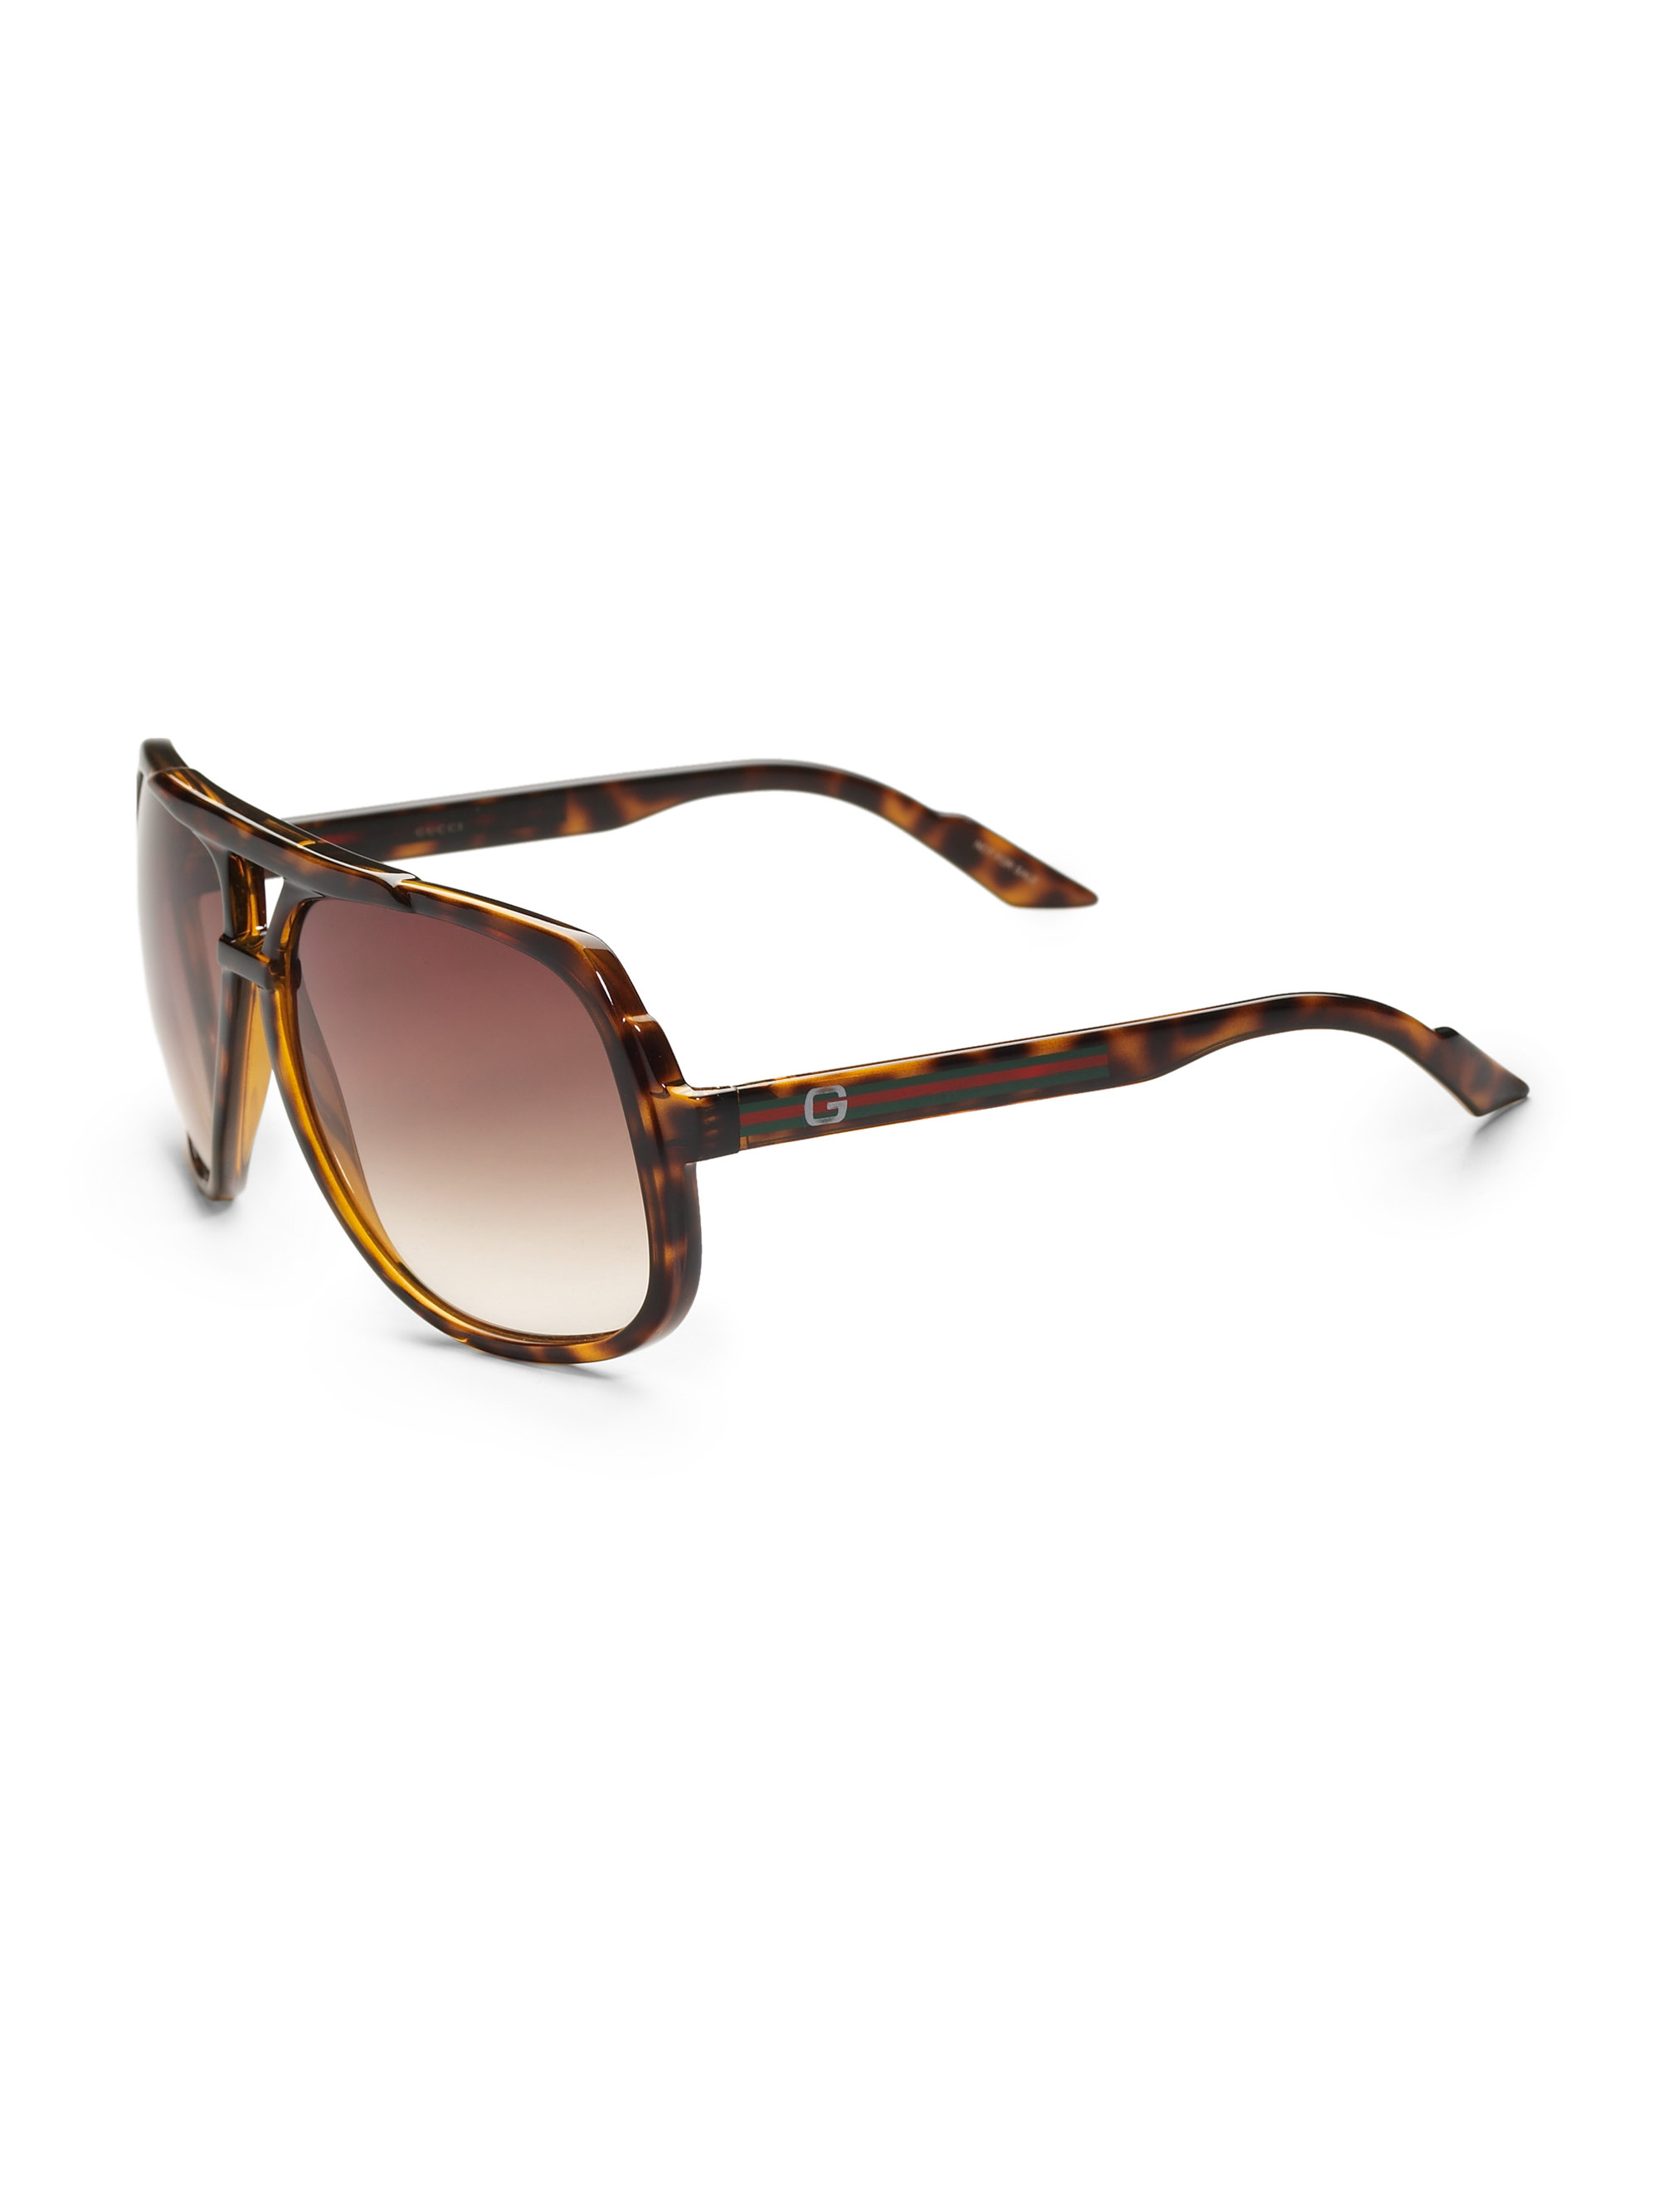 Lyst Gucci Plastic Aviator Sunglasses In Brown For Men